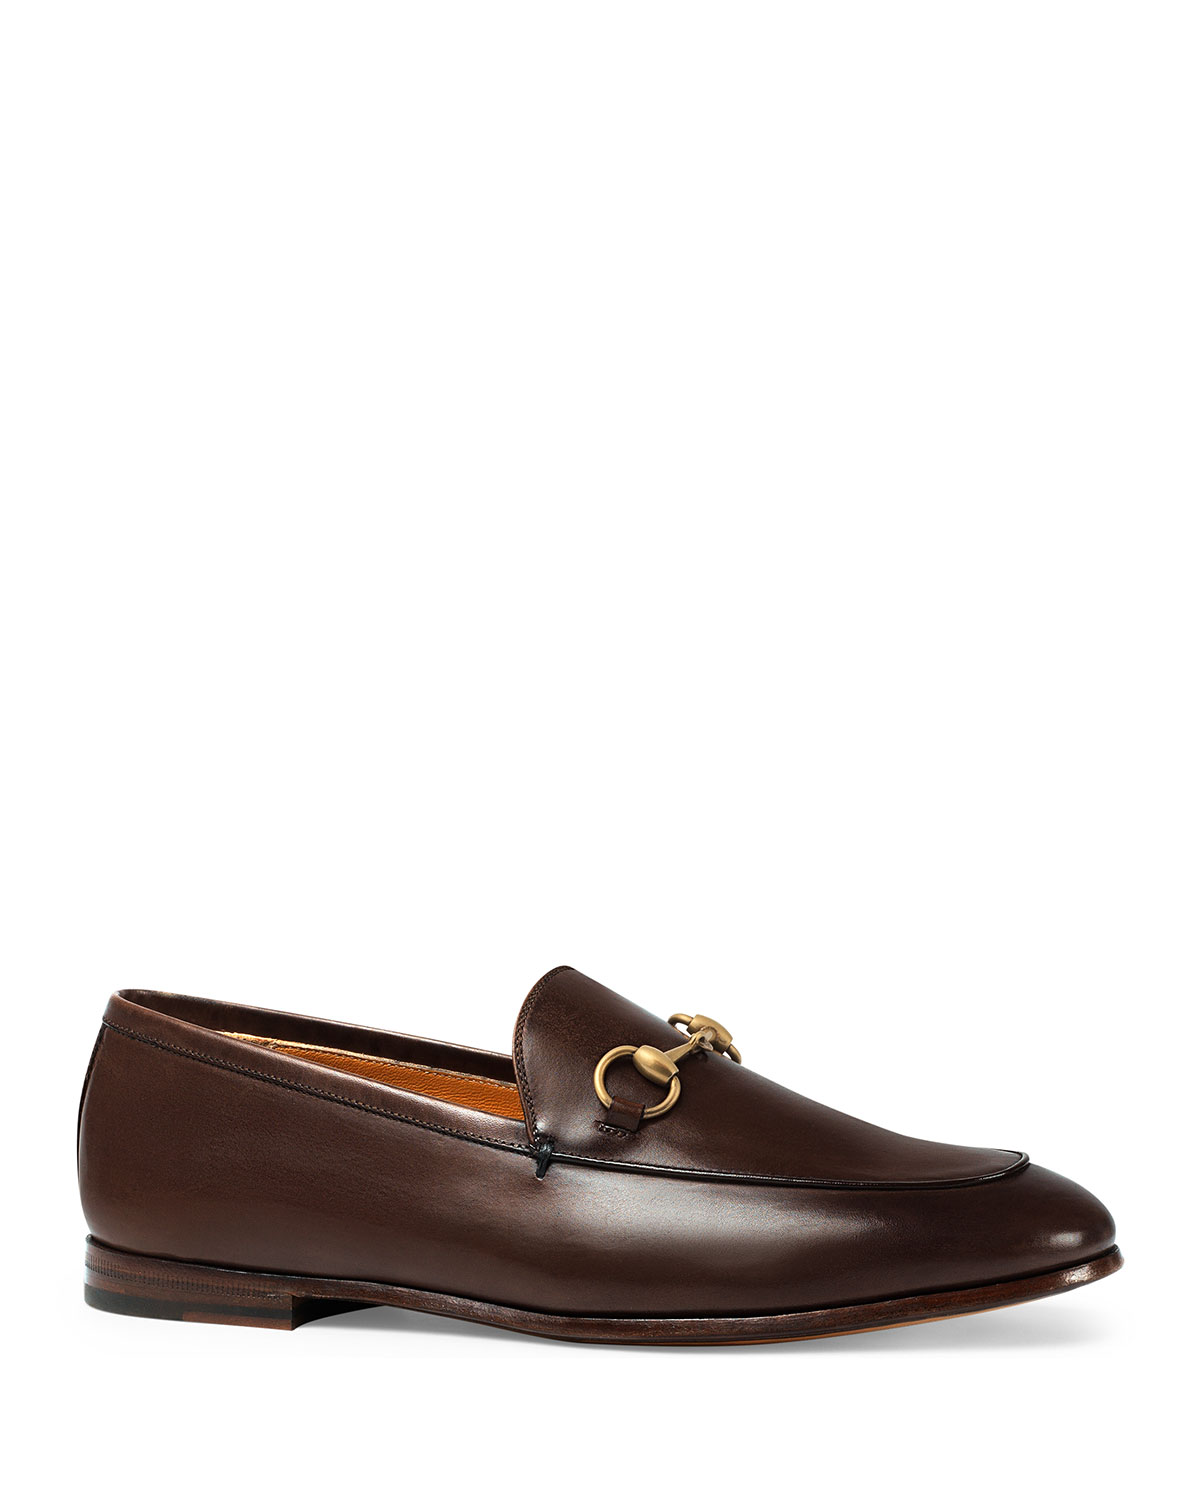 Gucci Leather Bit Loafers | Neiman Marcus